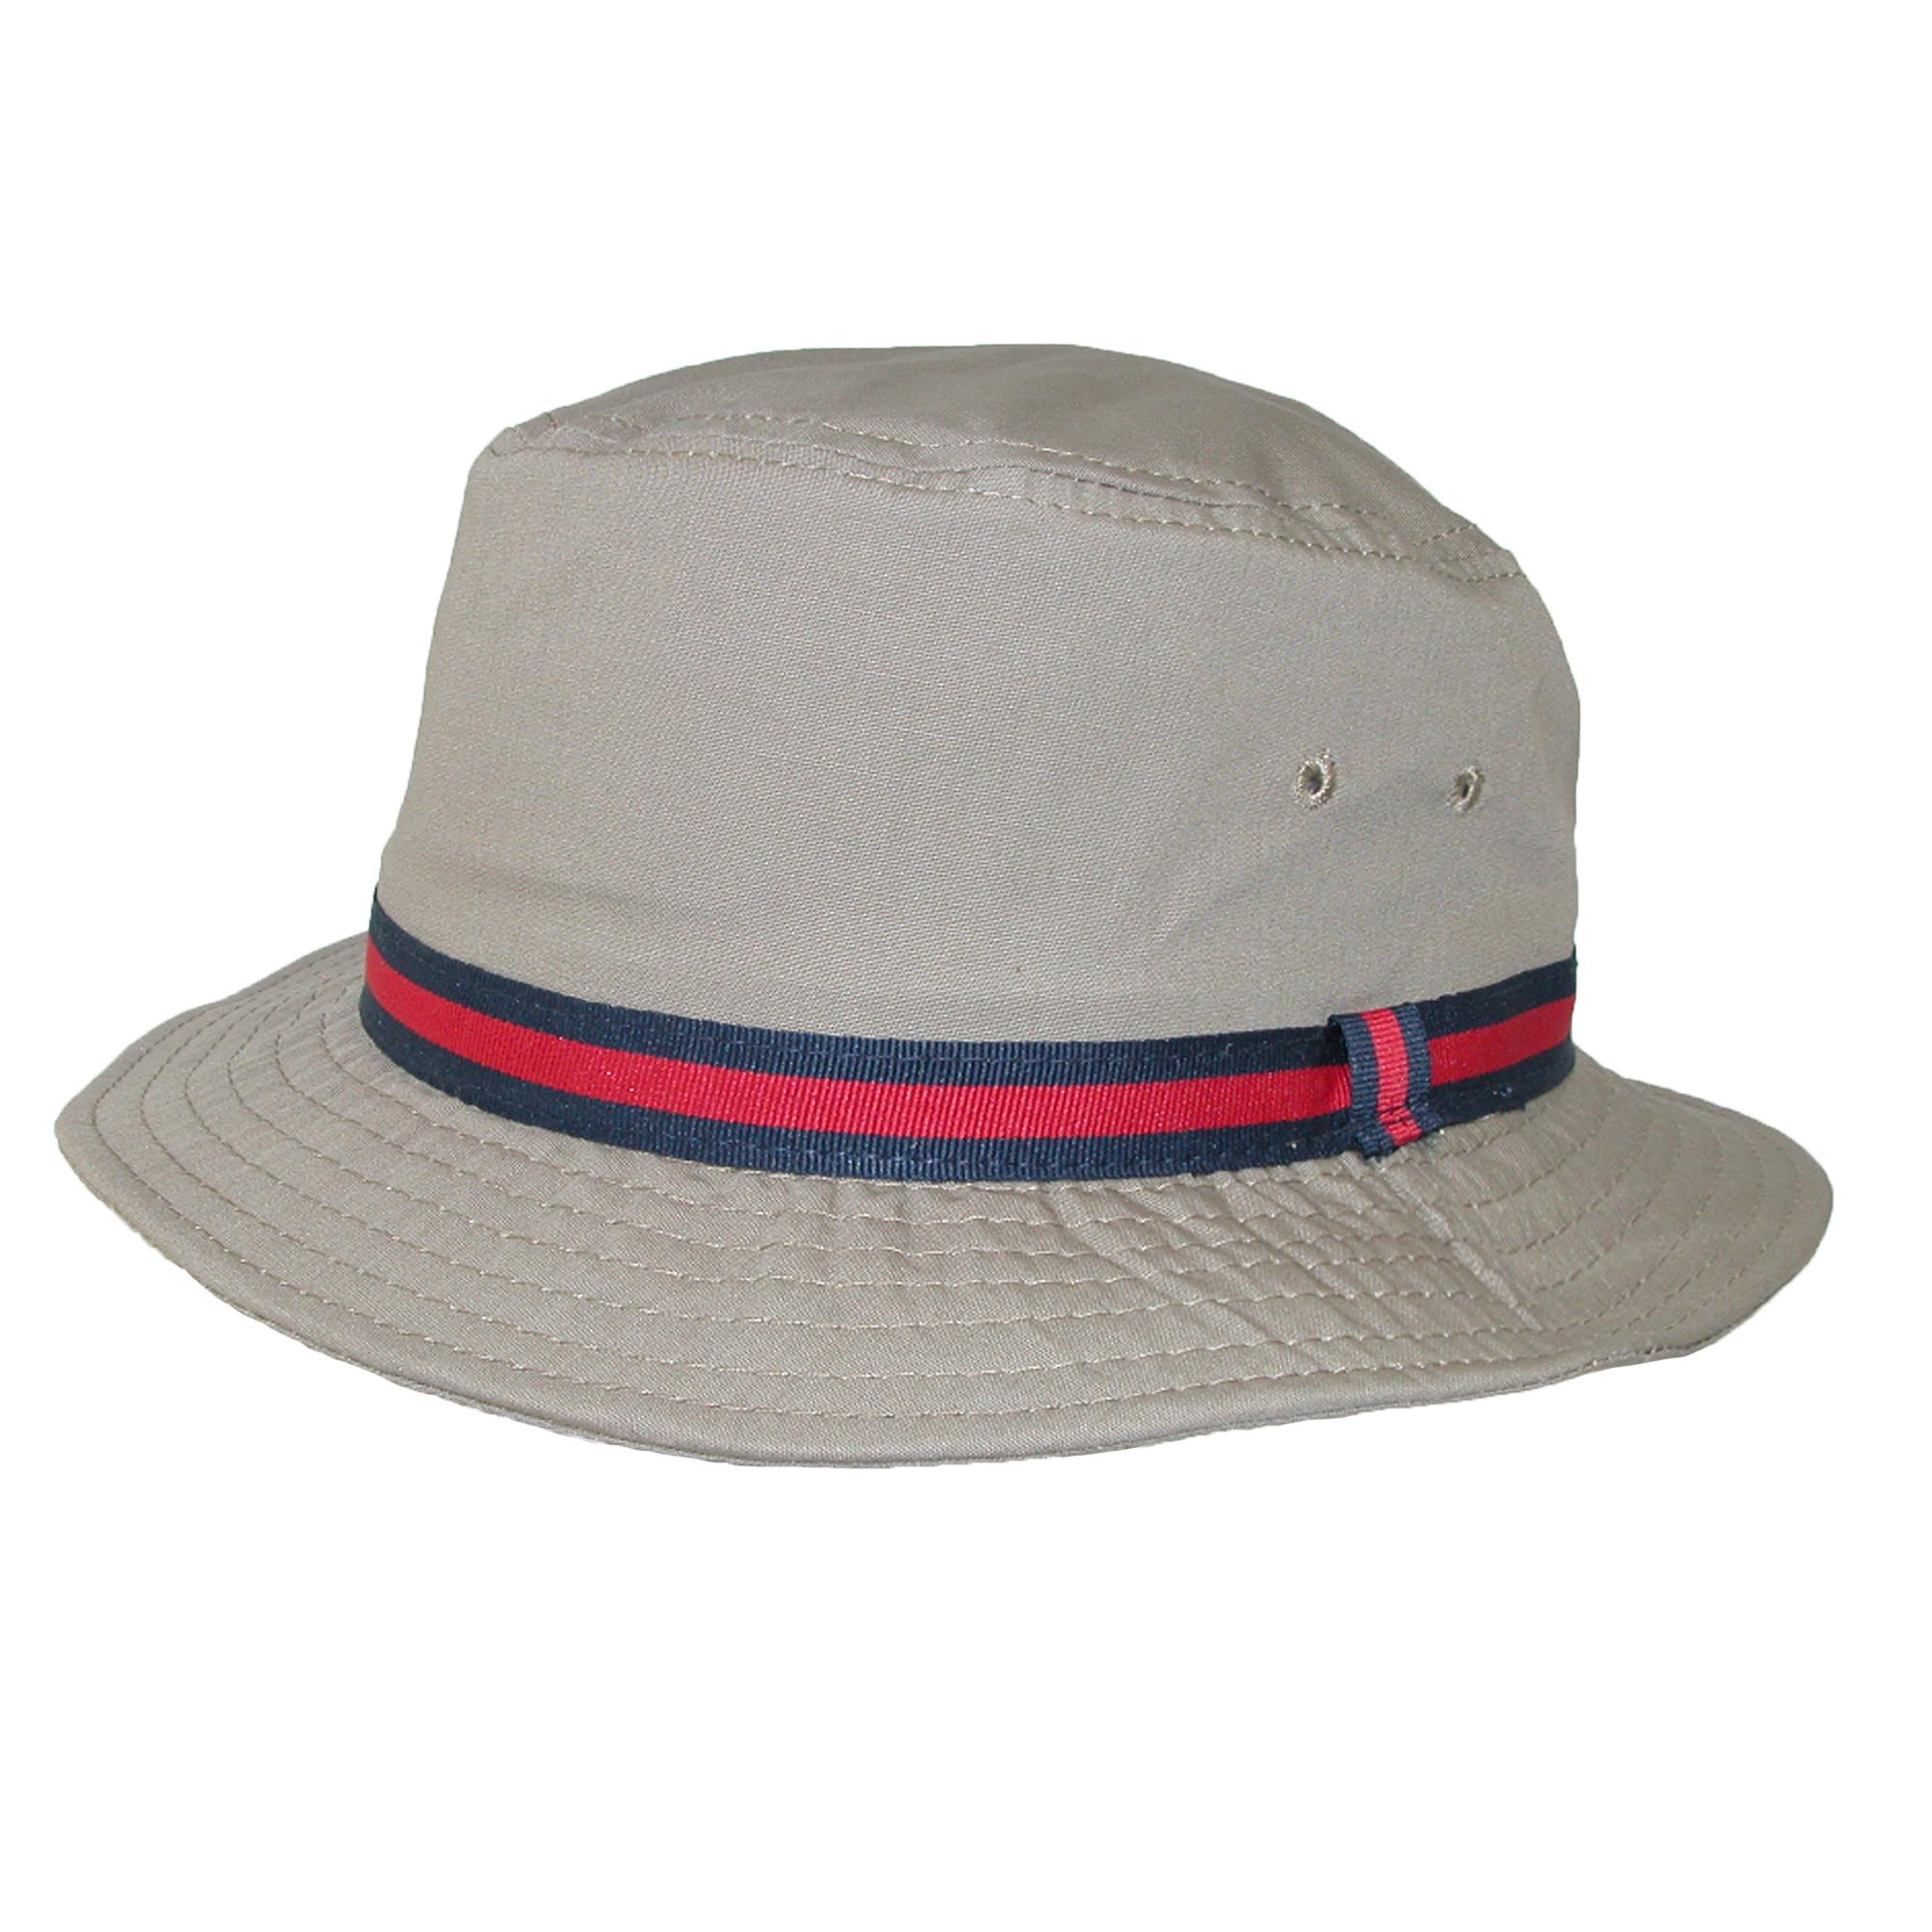 Dorfman_Pacific_Cotton_Water_Repellent_Traditional_Rain_Bucket_Hat_